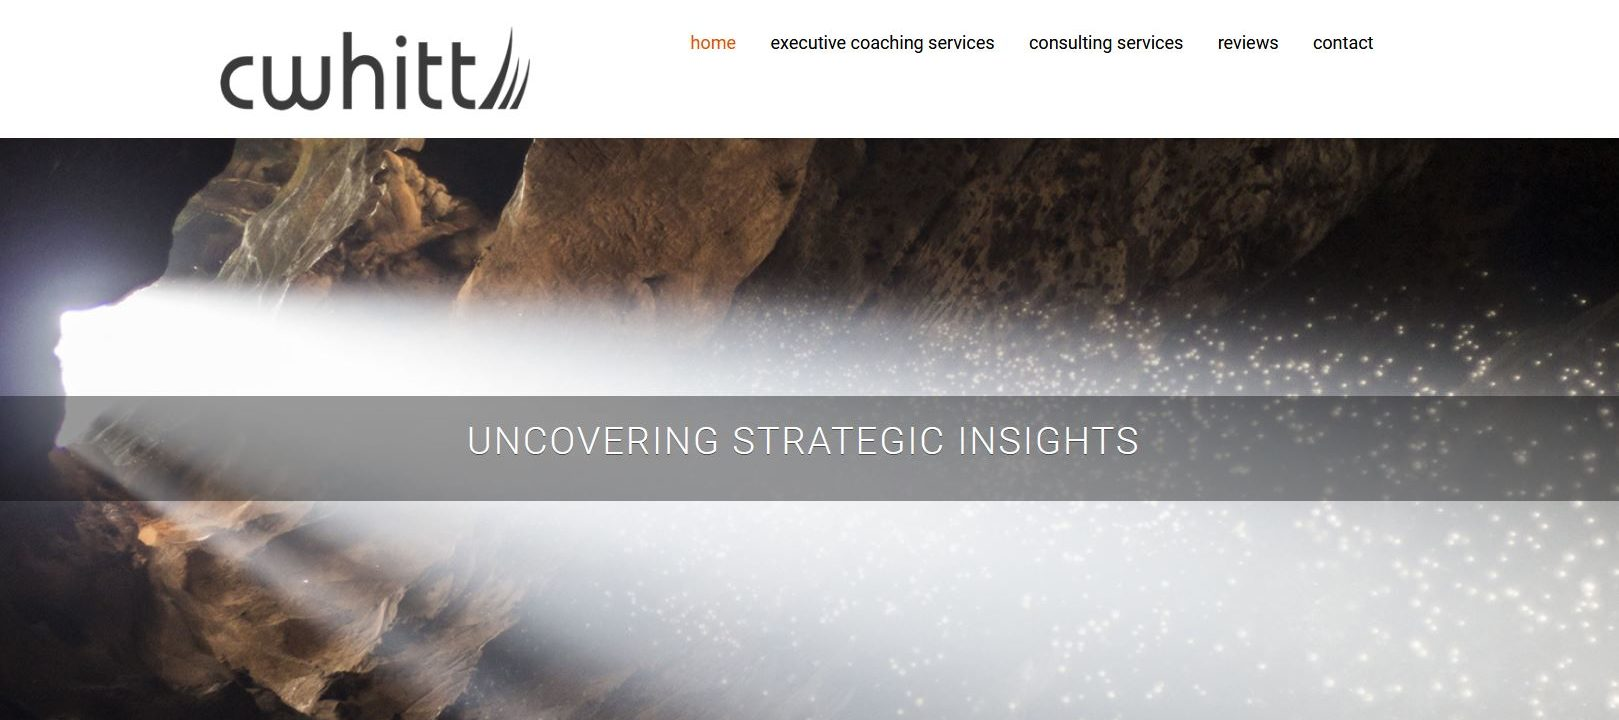 cwhitt new web design